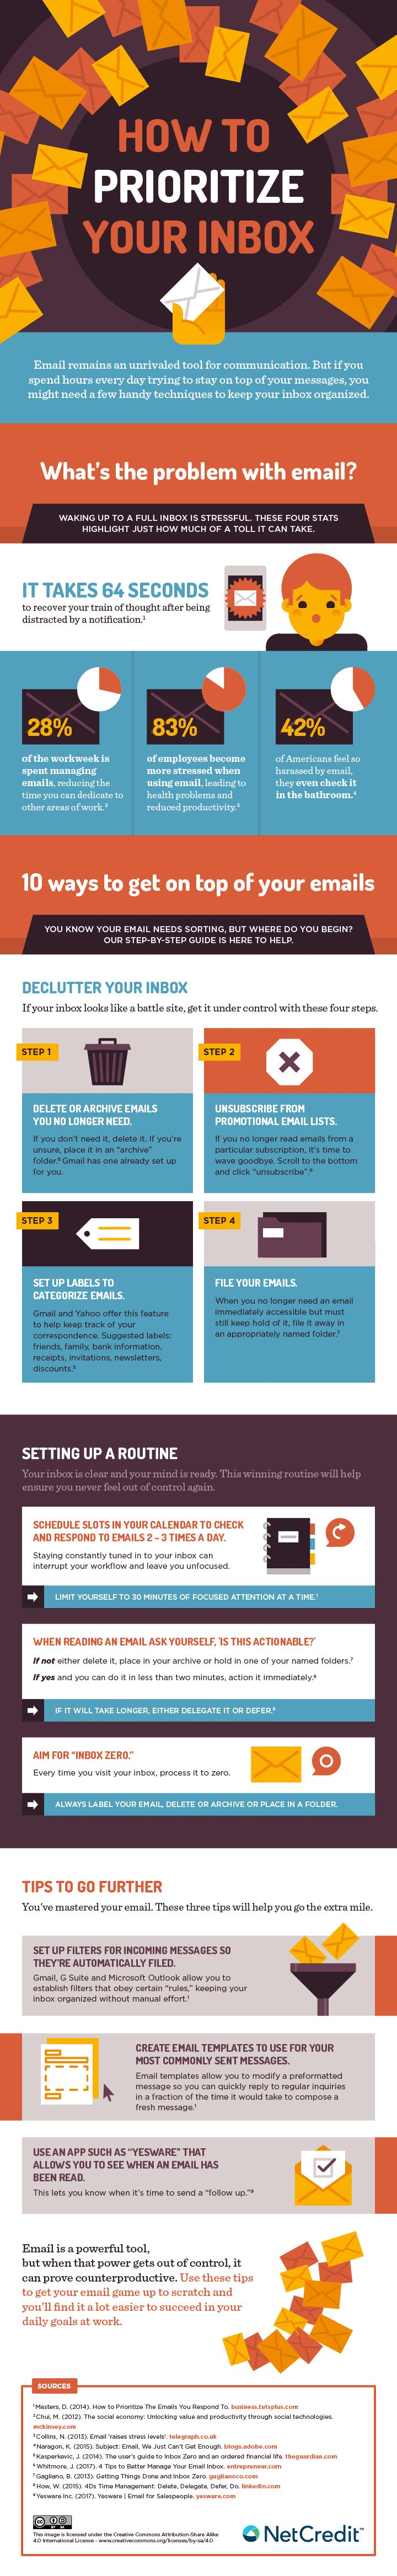 How to Prioritize Your Inbox (Infographic)